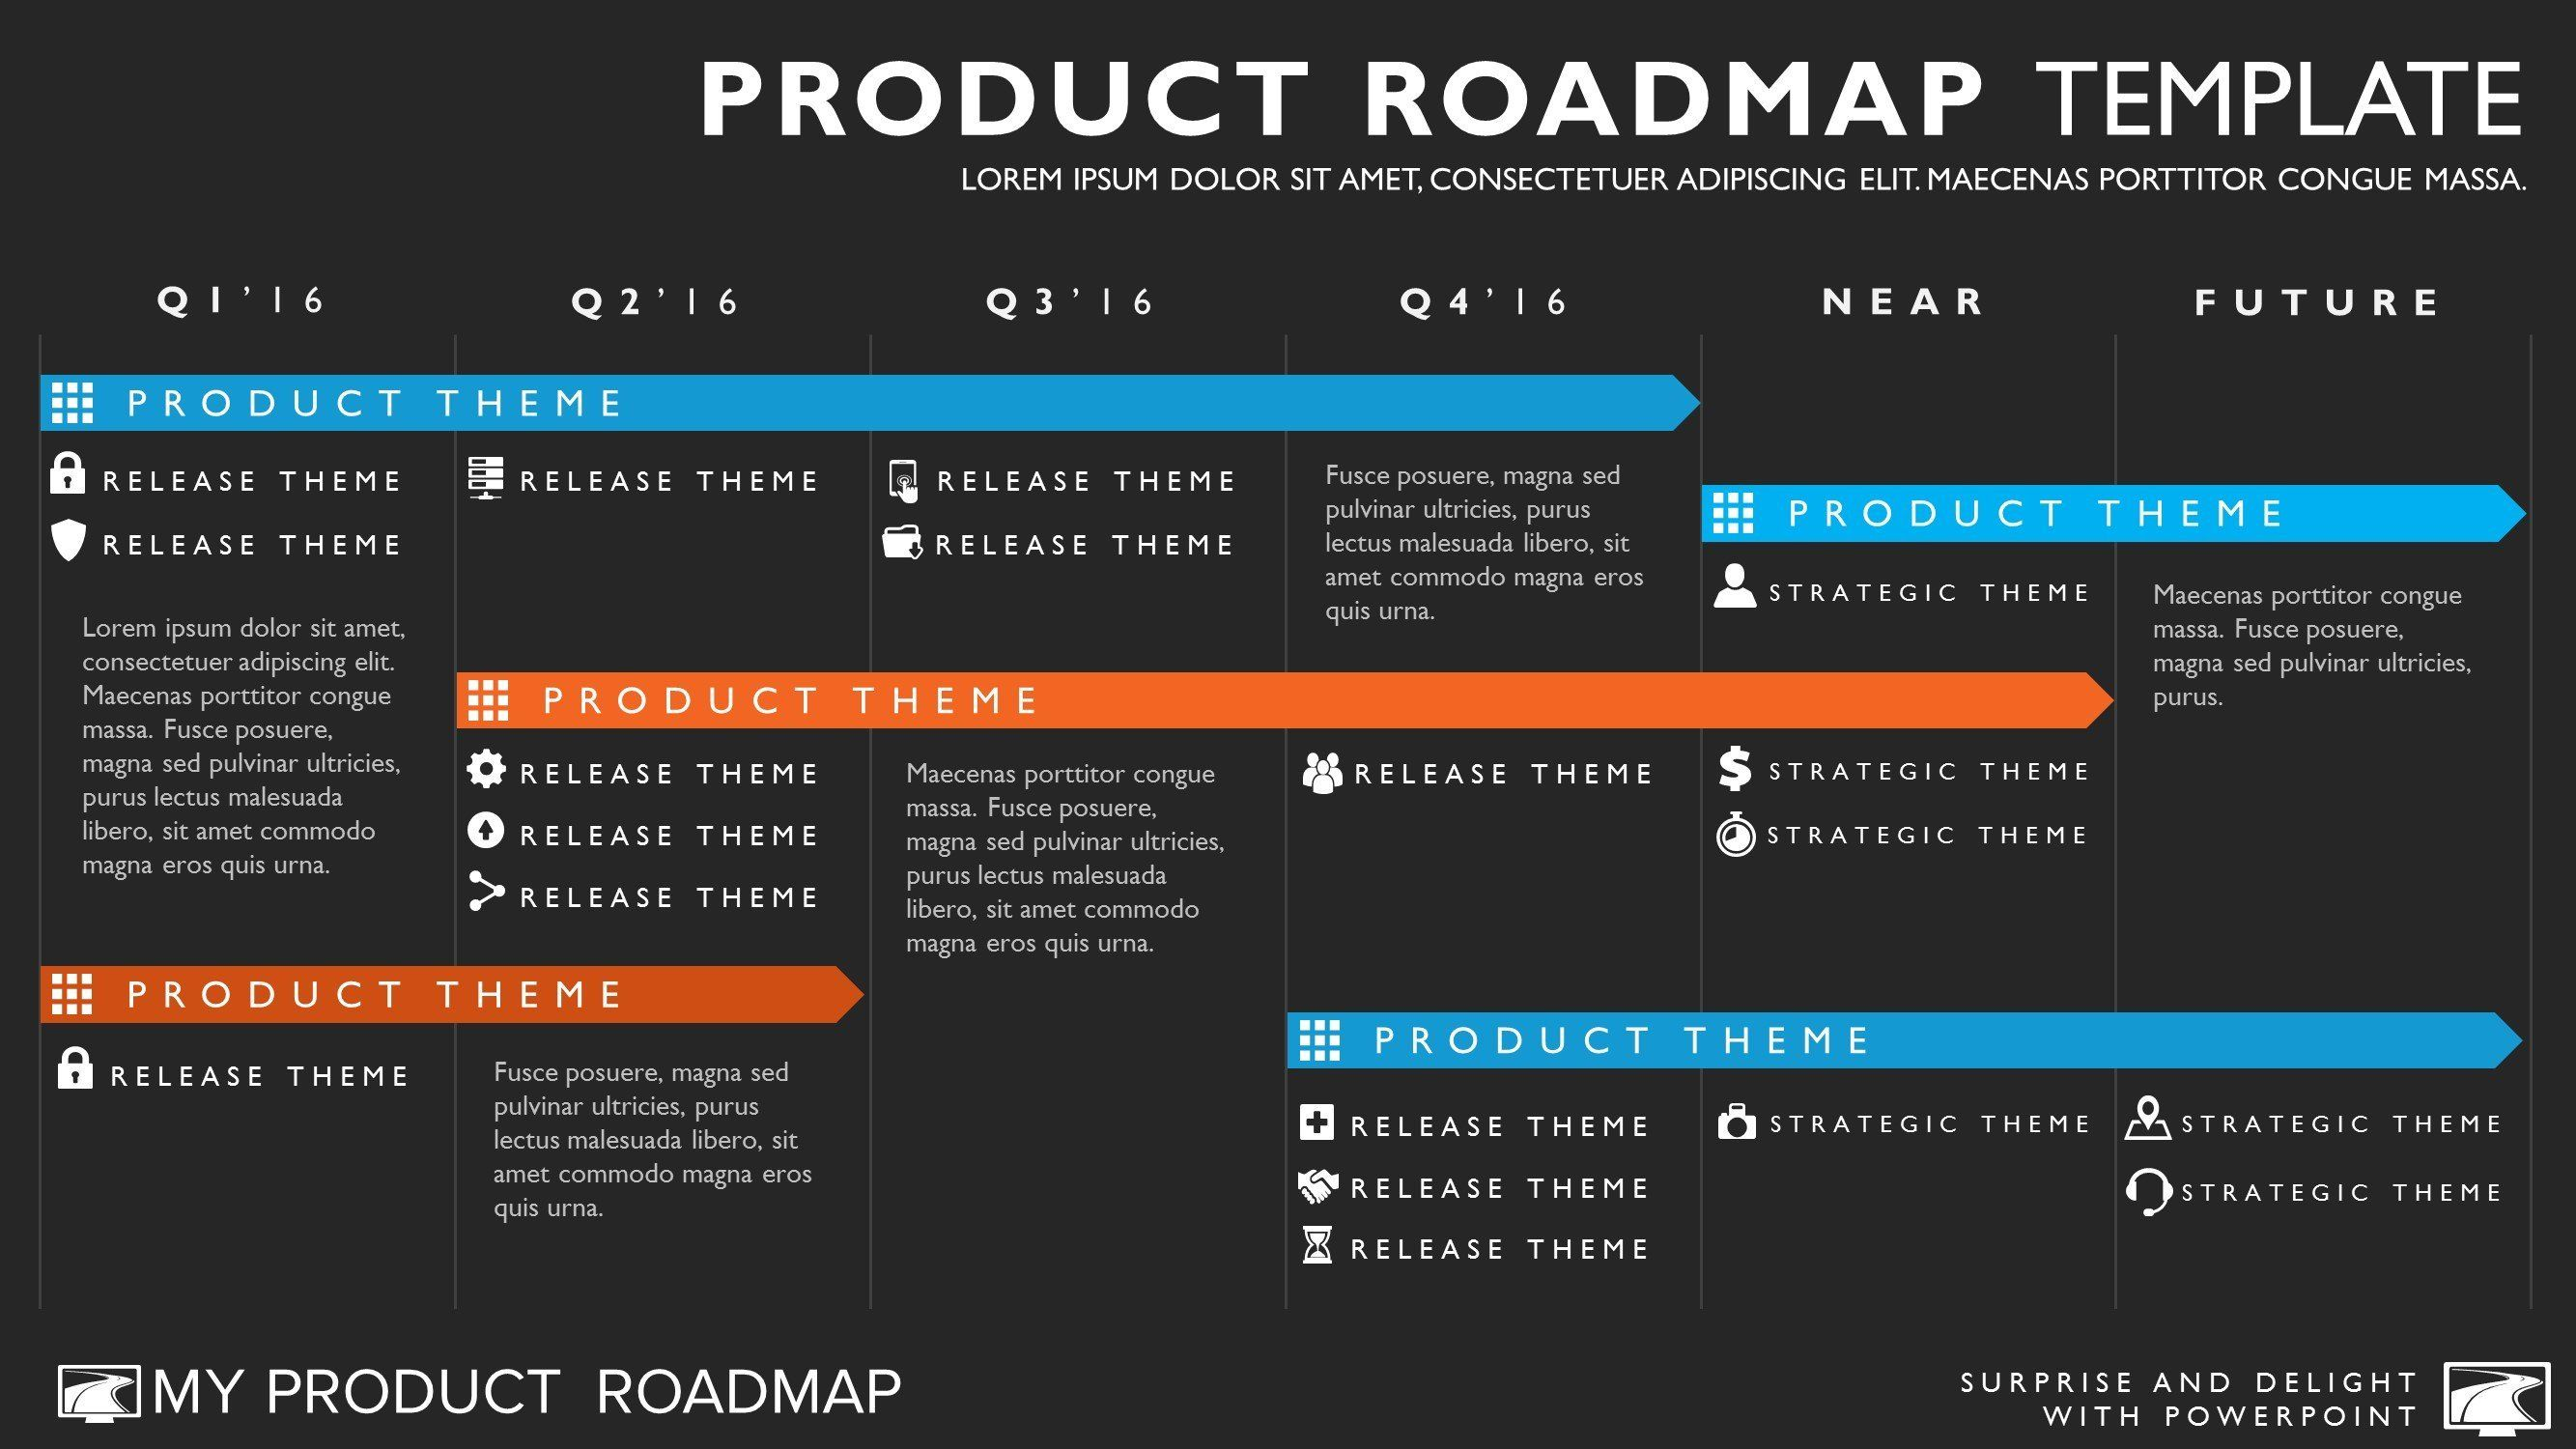 six phase agile timeline roadmap powerpoint template my product roadmap product roadmaps. Black Bedroom Furniture Sets. Home Design Ideas